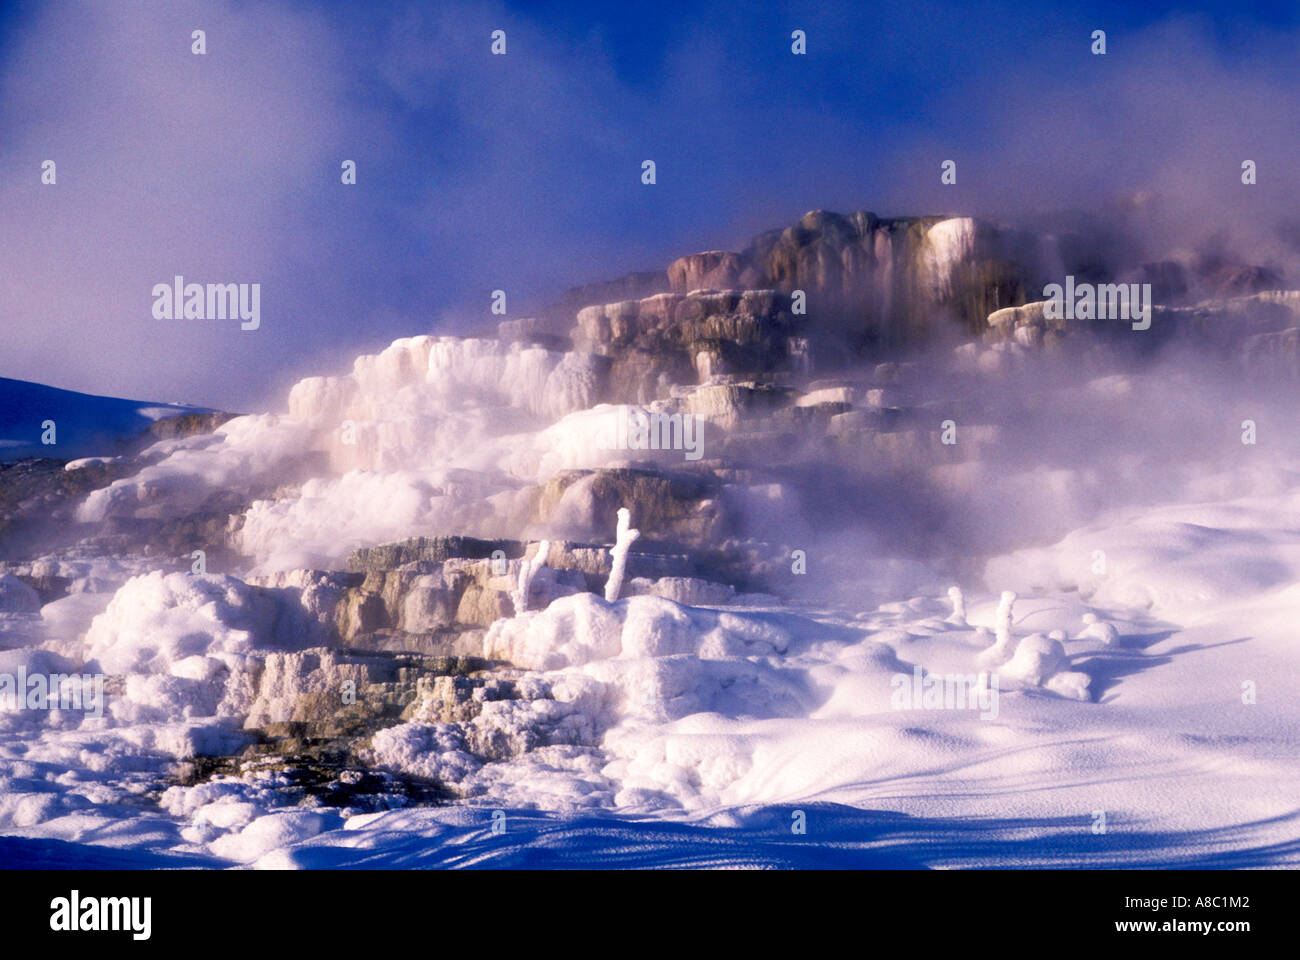 Wyoming Yellowstone National Park Mammoth Hot Springs terracs in winter - Stock Image